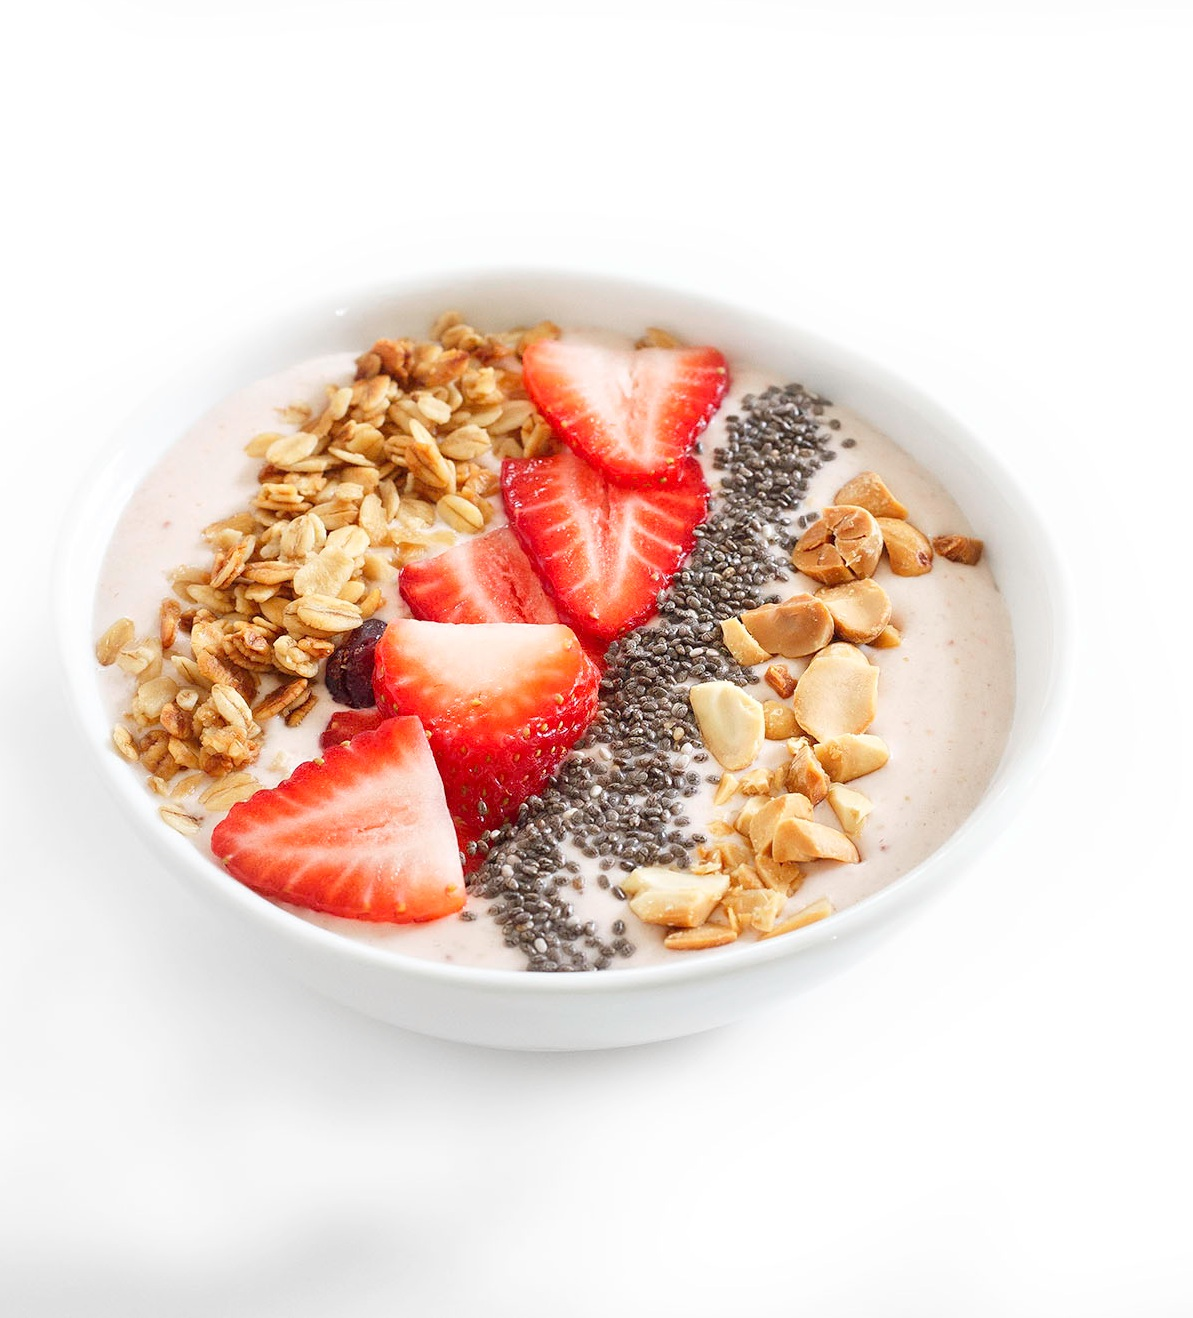 NCG_Peanut+Butter+Berry+Smoothie+Bowl_onwhite1_UR.jpg